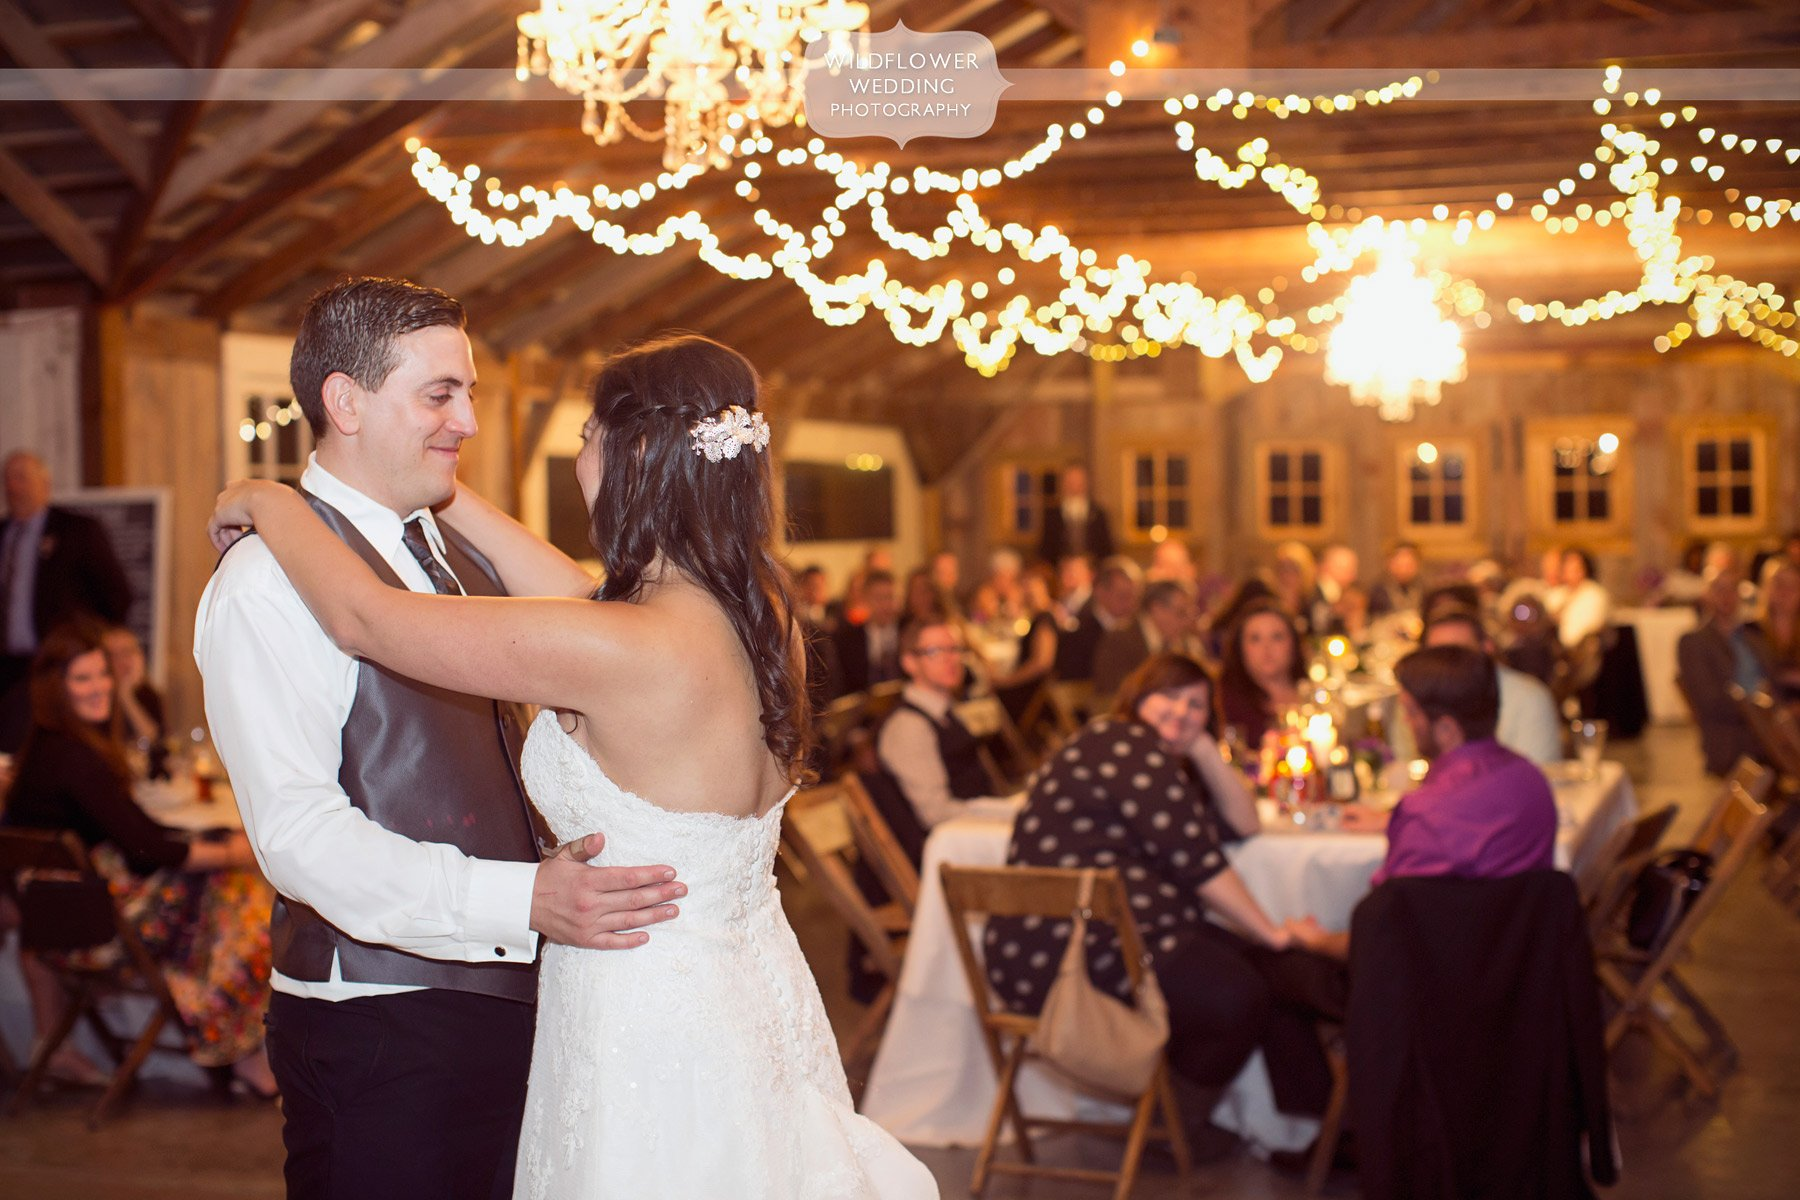 weston-red-barn-wedding-kc-mo-41